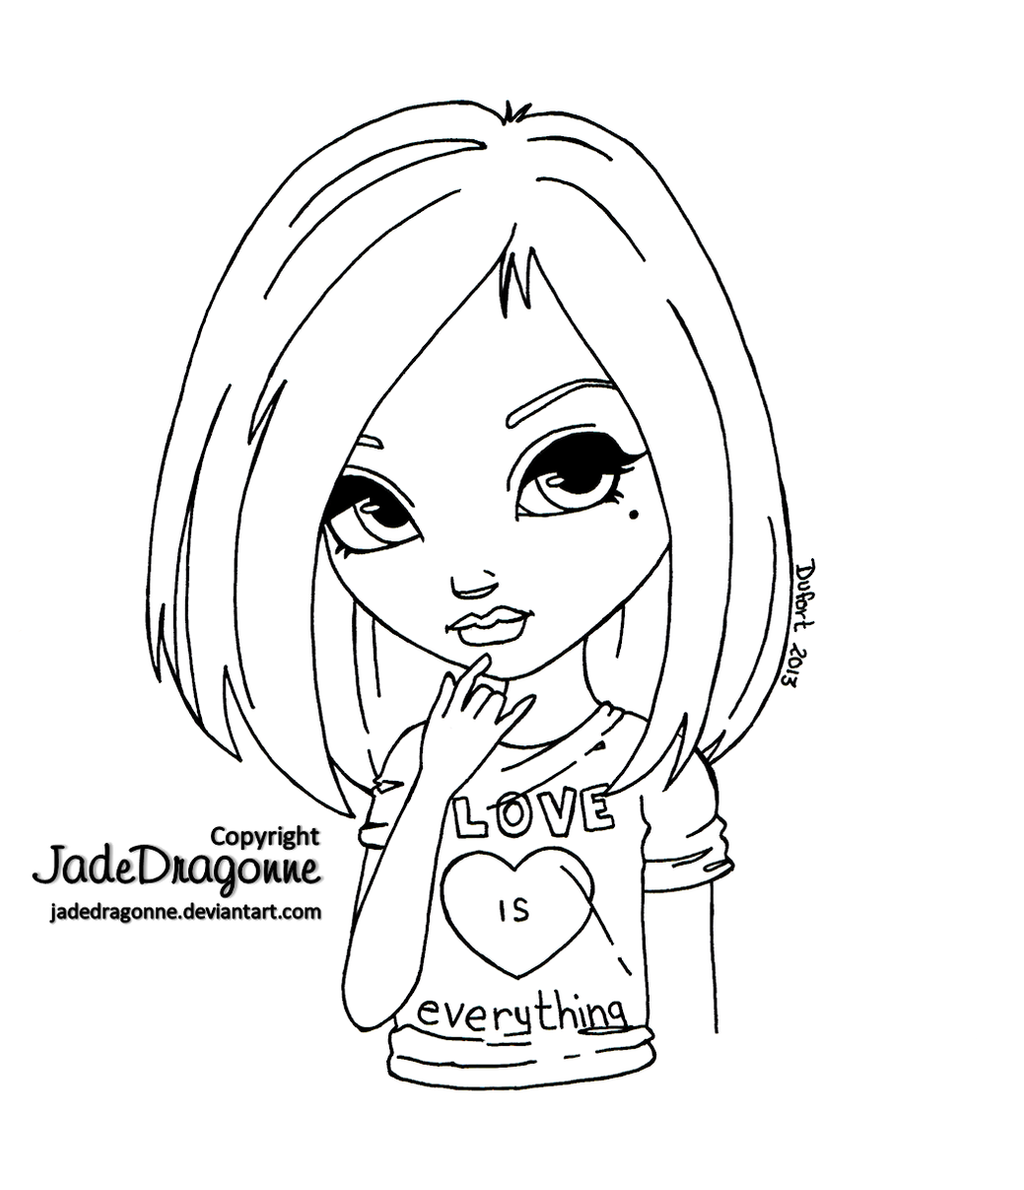 Love is everything by jadedragonne on deviantart for Coloring pages everything